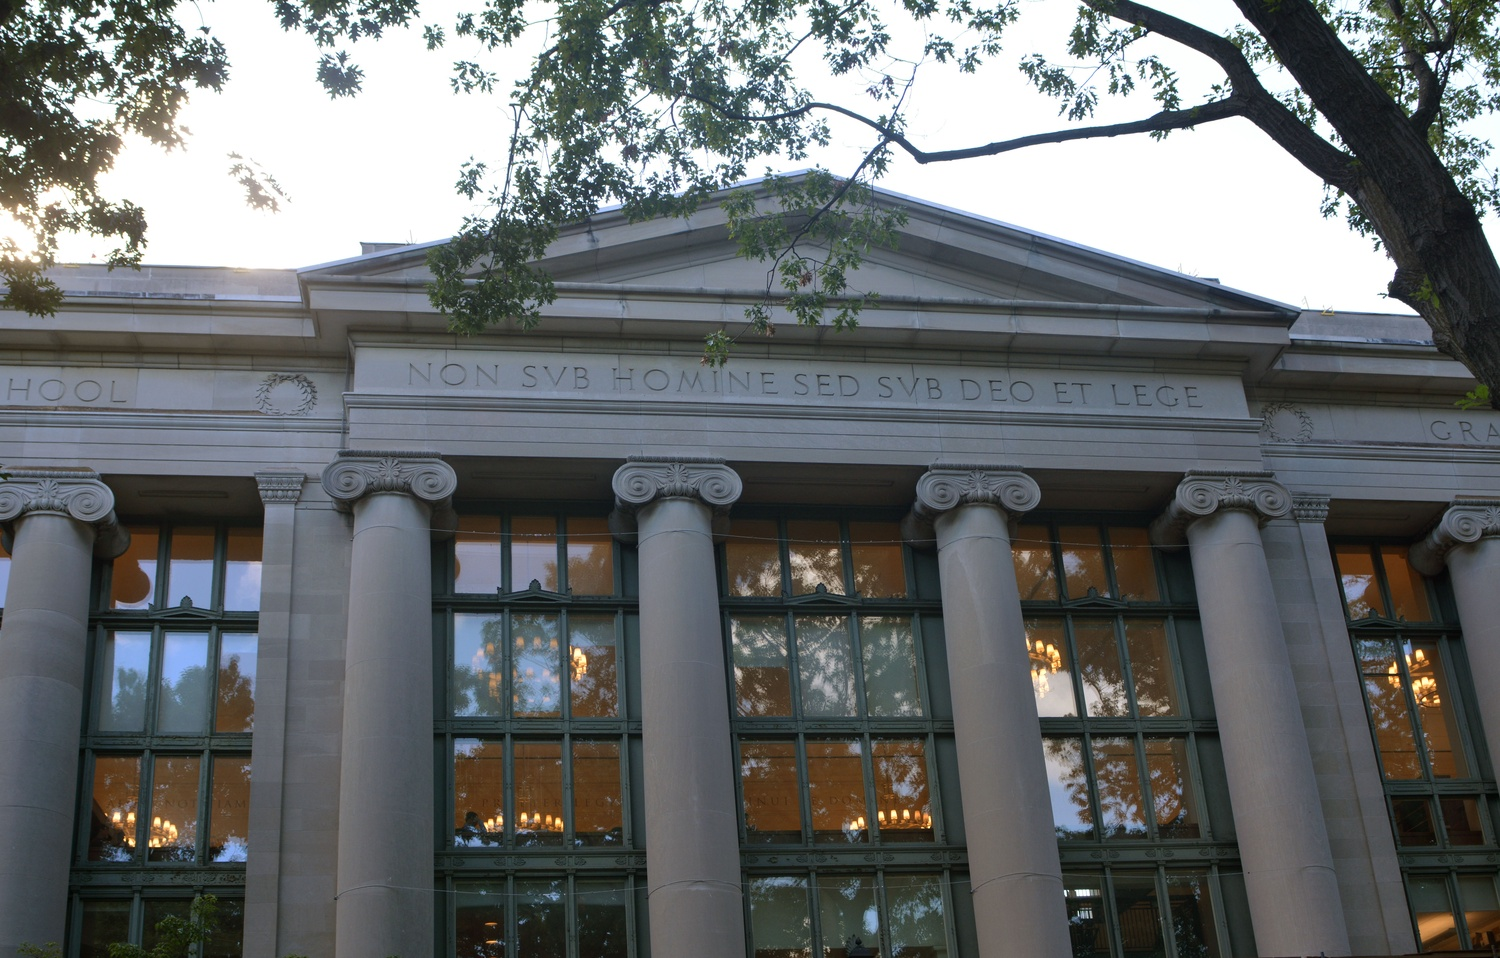 Harvard Law School informed its students of Title IX policy changes on Aug. 28, after being finalized over the summer.